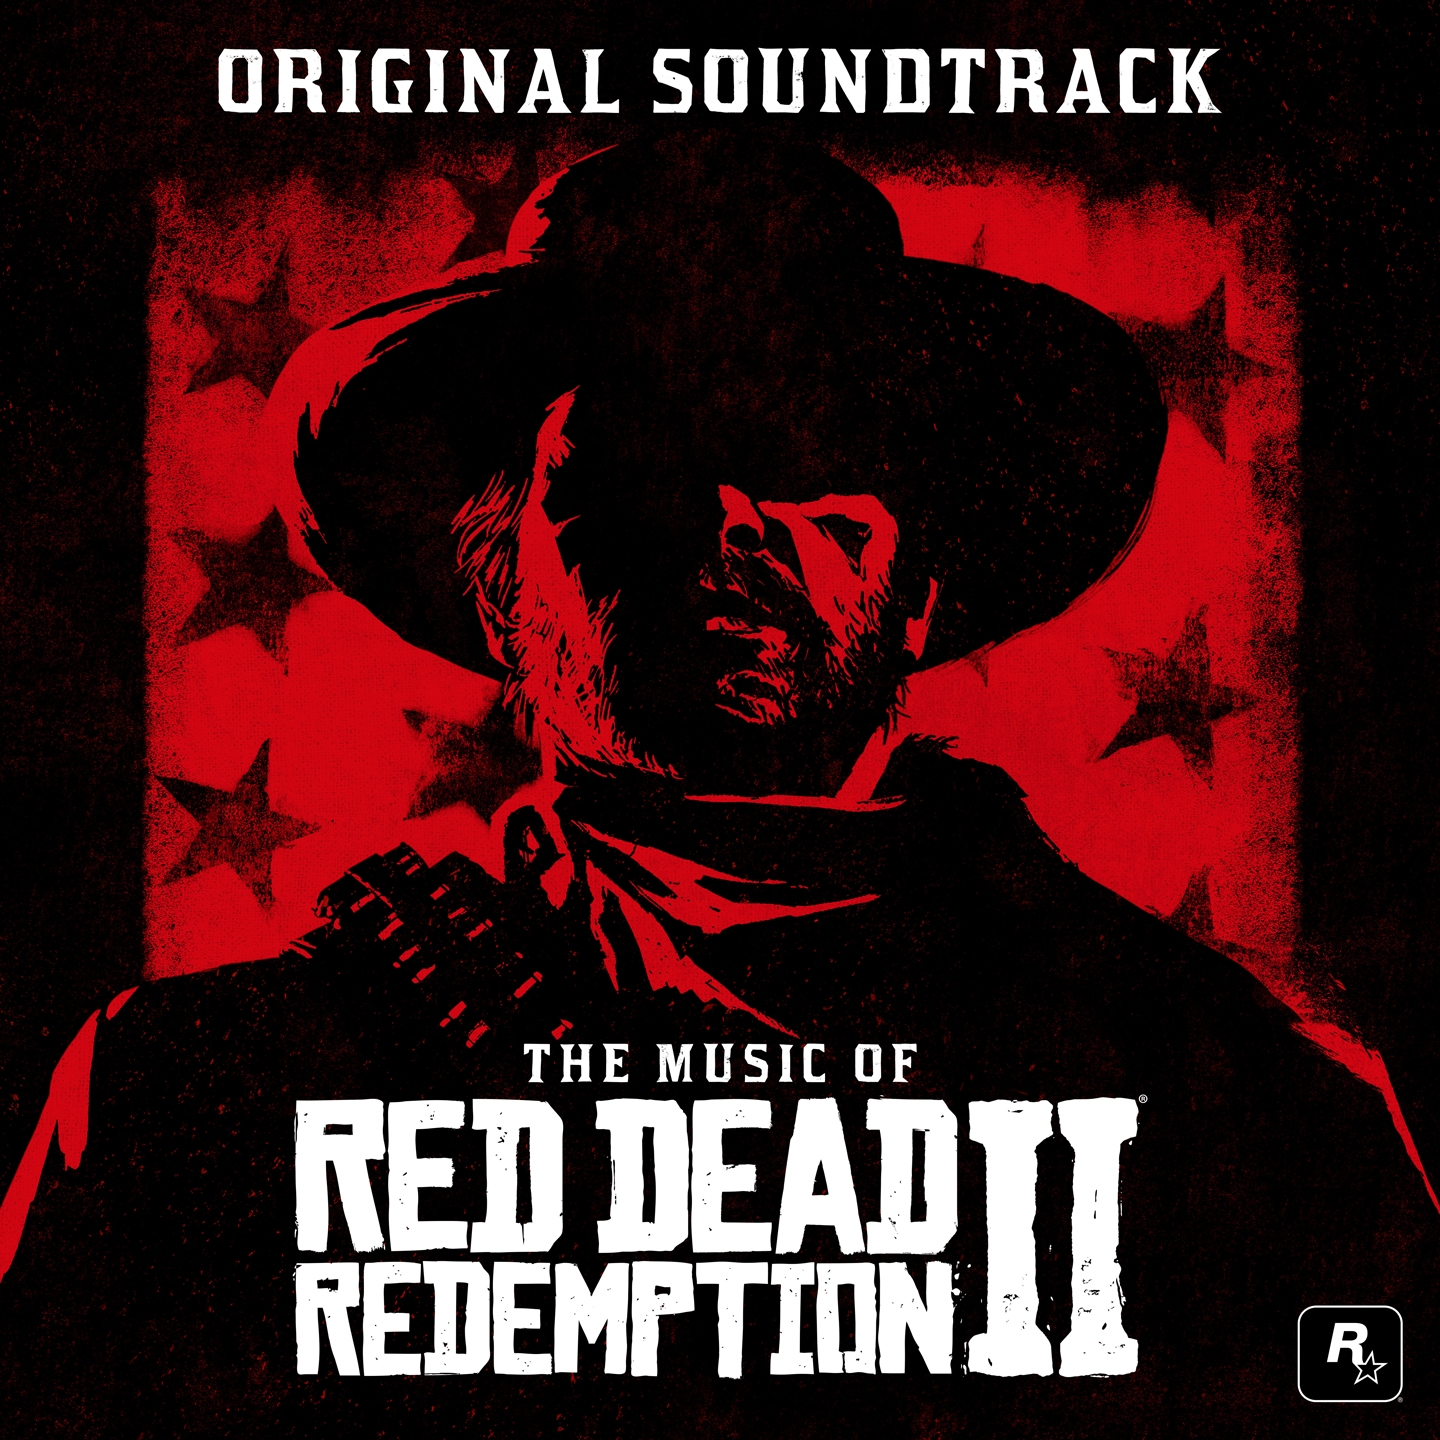 The Music of Red Dead Redemption 2: Original Soundtrack Out